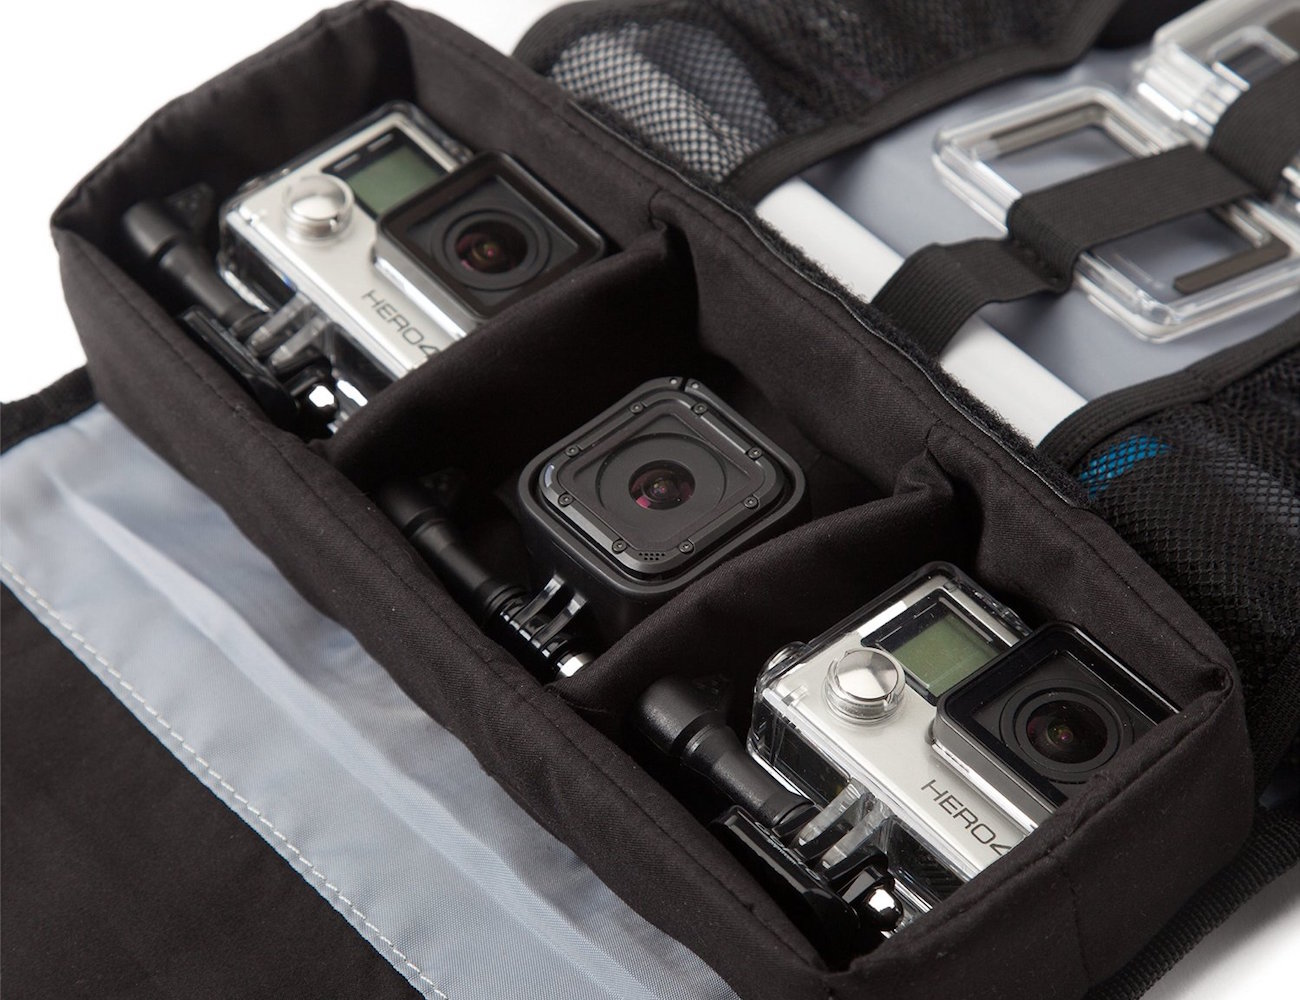 GPTC-23 Trekcase by GoPole – Weather Resistant Roll-Up Case for GoPro Cameras